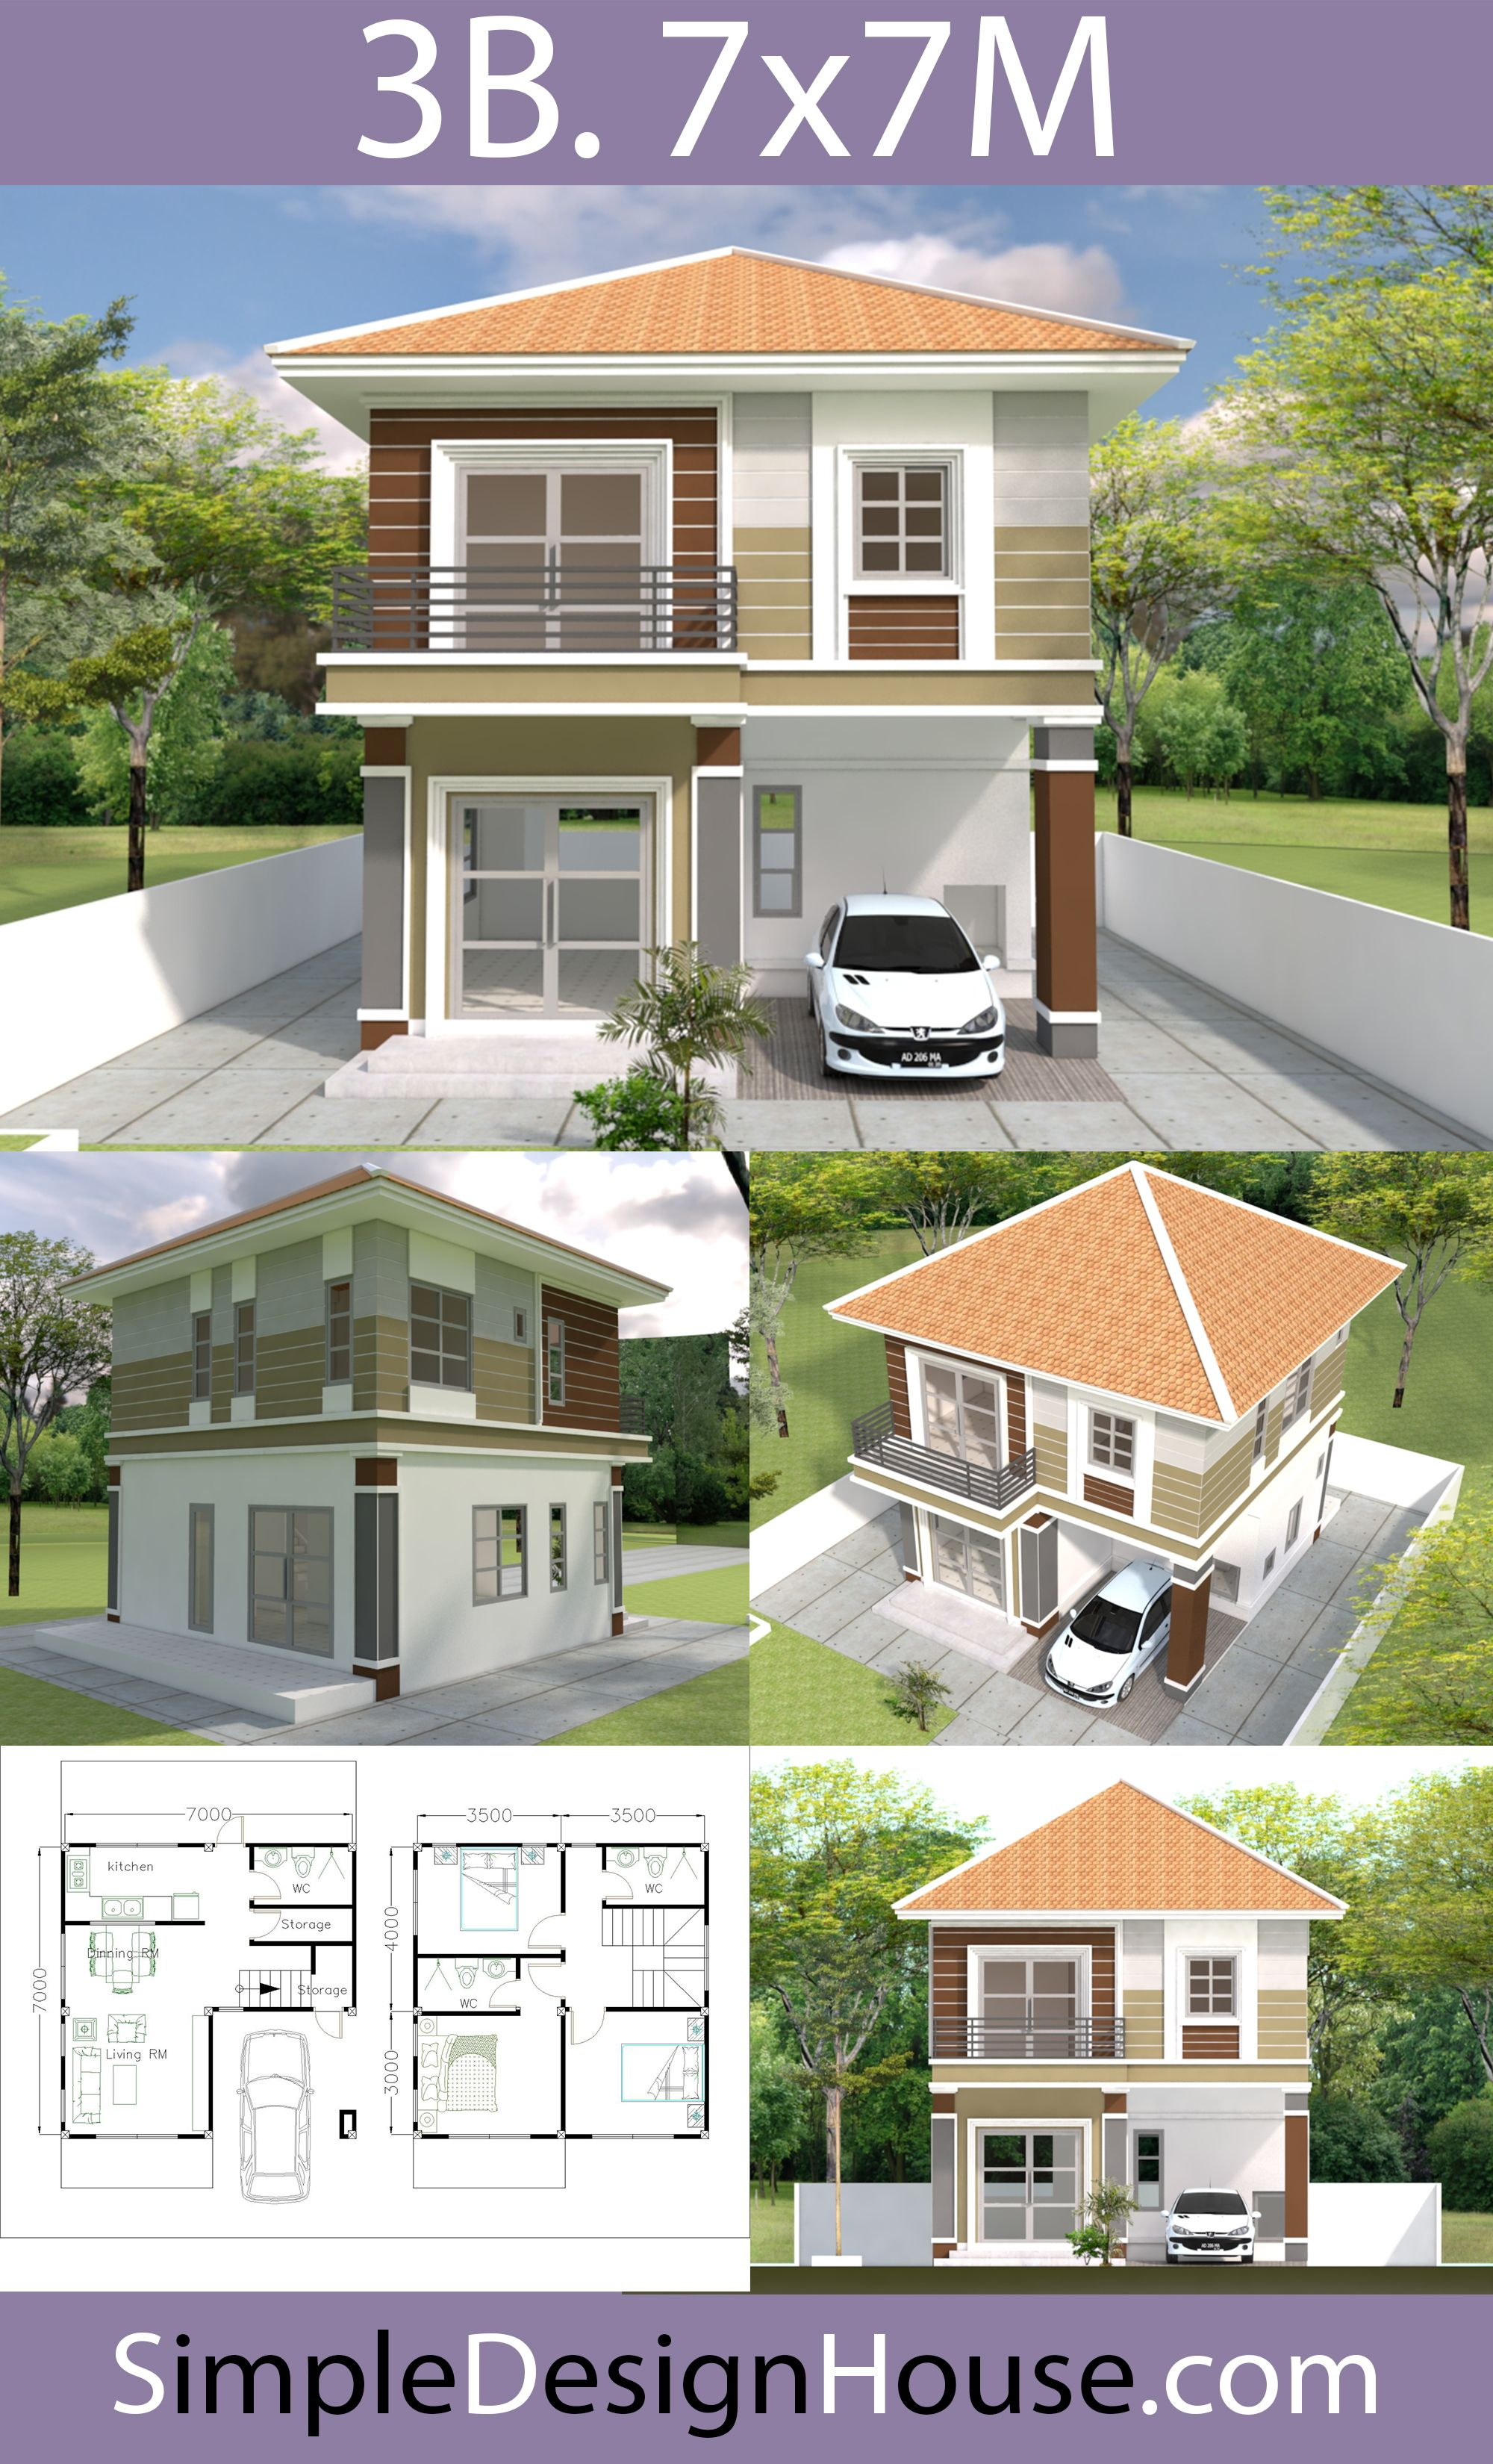 Small House Design 7x7m with 3 Beds